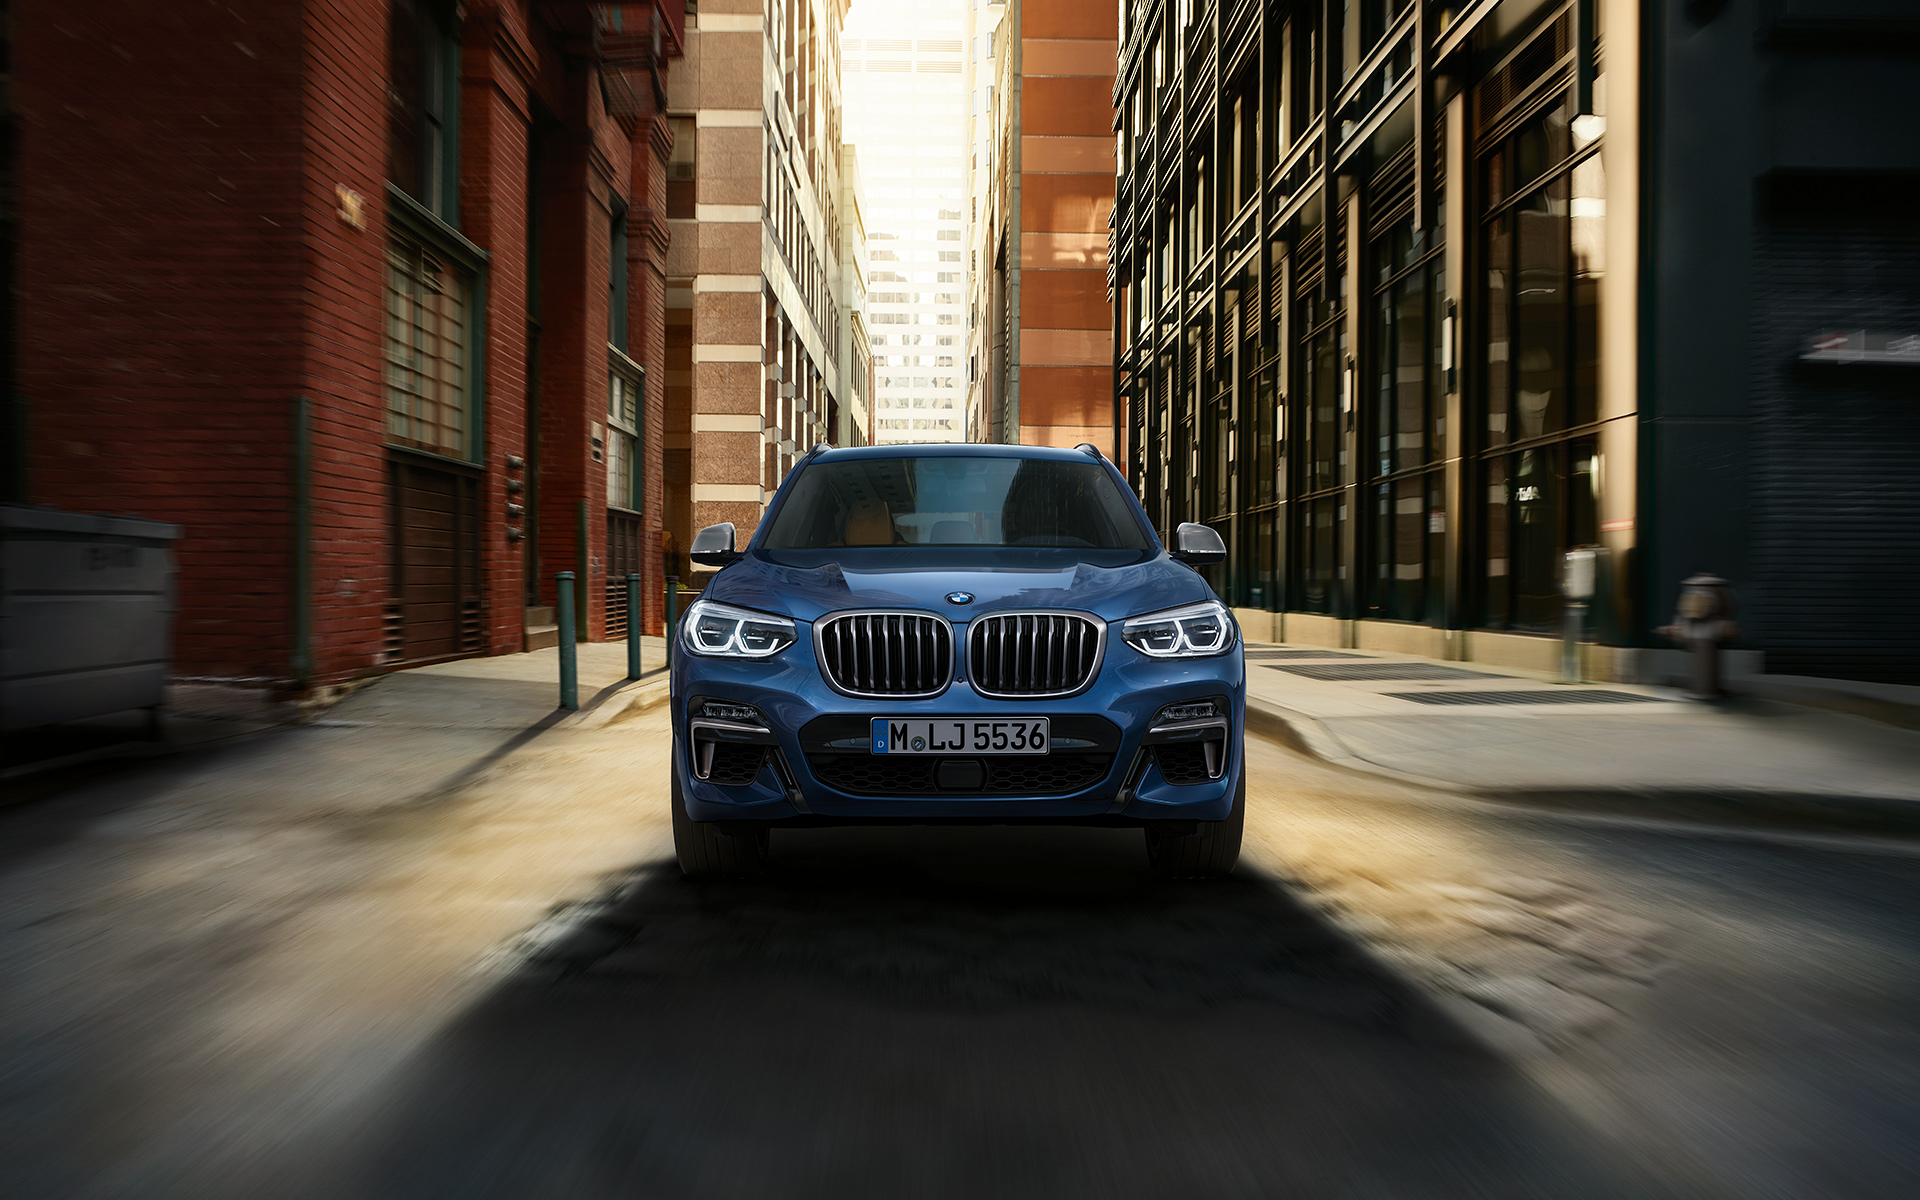 BMWX Series X3: front view of bright blue car between city buildings.